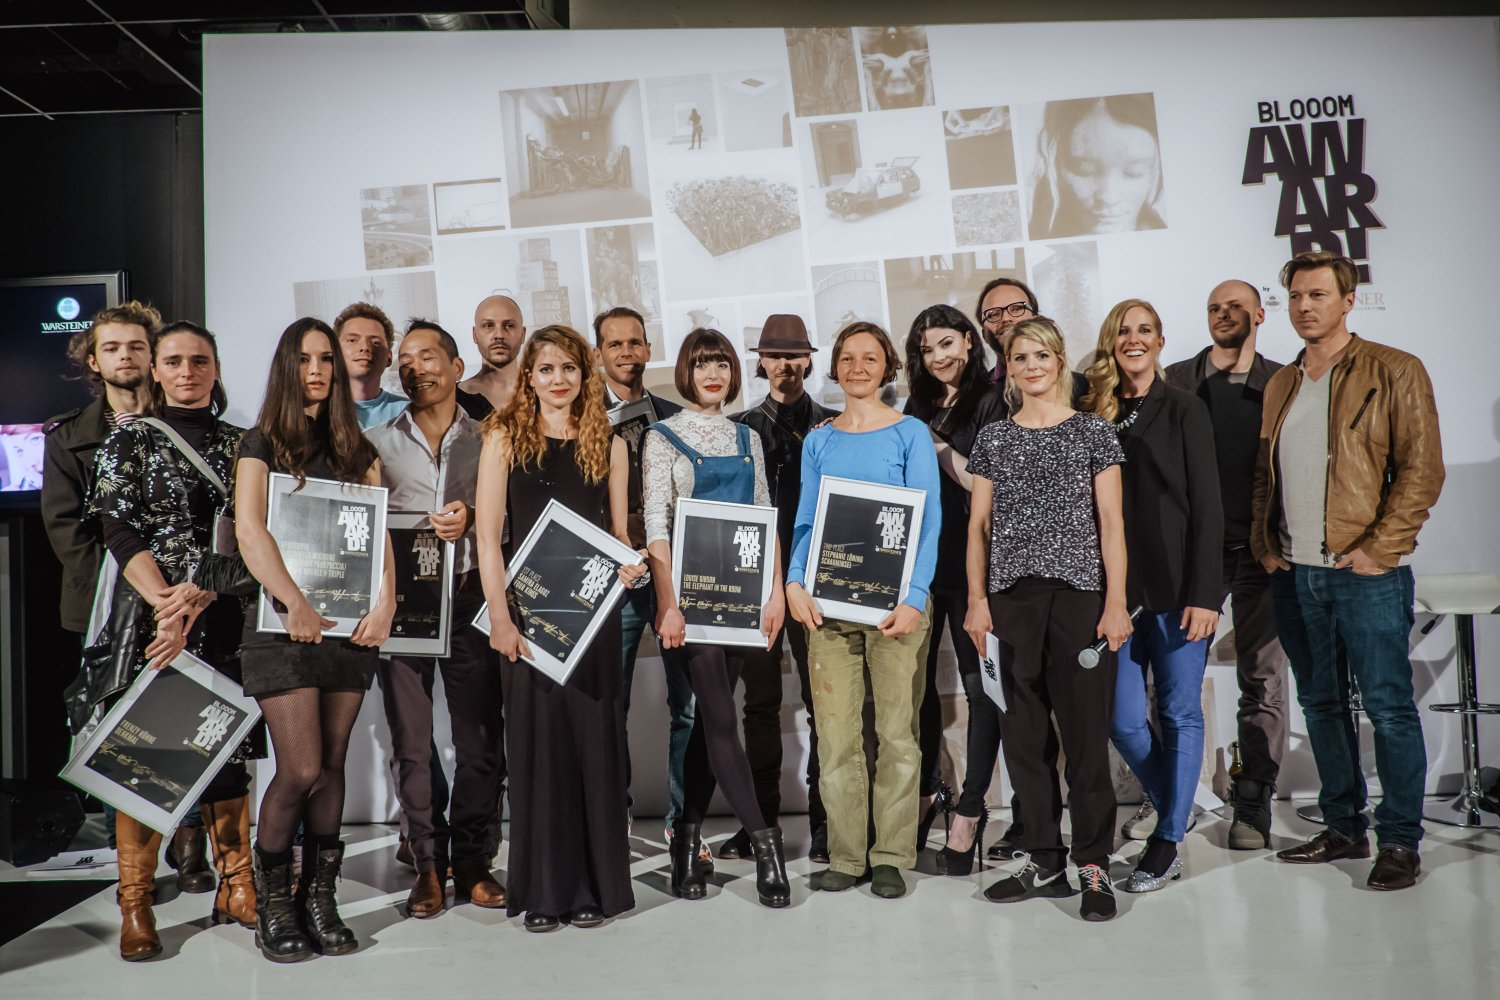 Apply for the 2015 BLOOOM Award by WARSTEINER